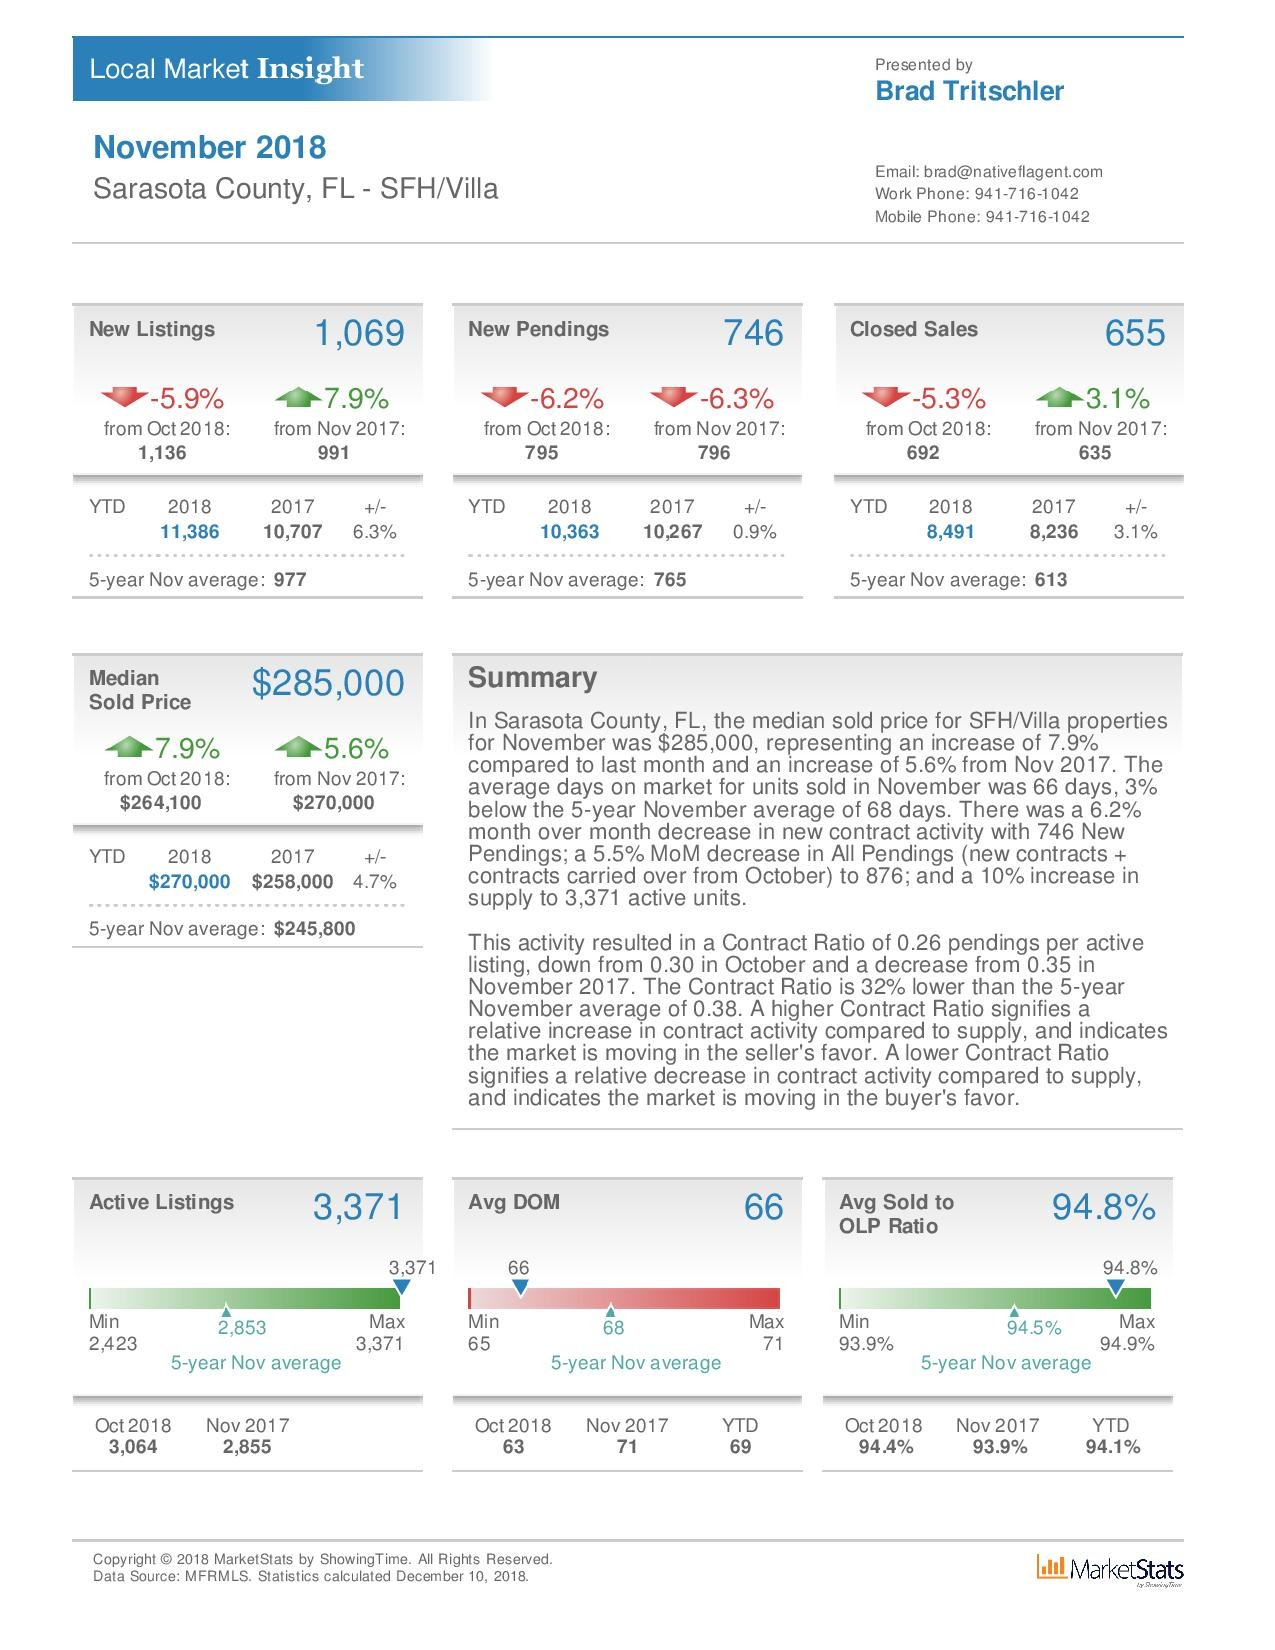 Market Insight November 2018